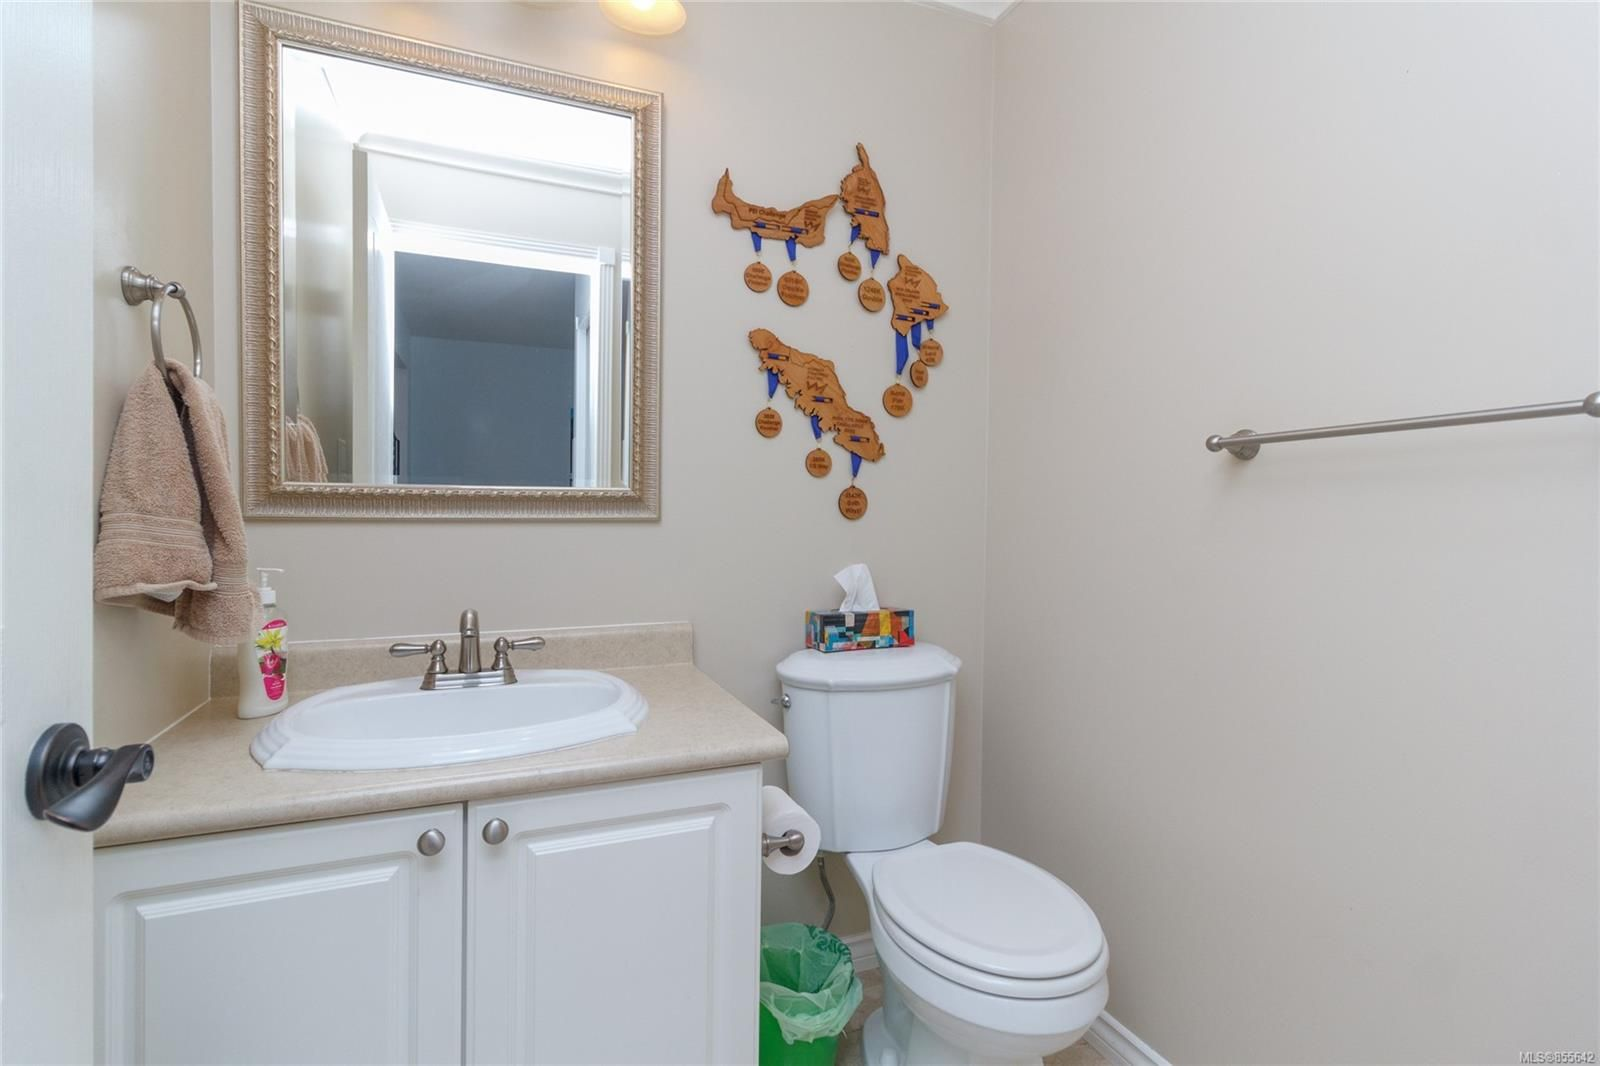 Photo 17: Photos: 52 14 Erskine Lane in : VR Hospital Row/Townhouse for sale (View Royal)  : MLS®# 855642